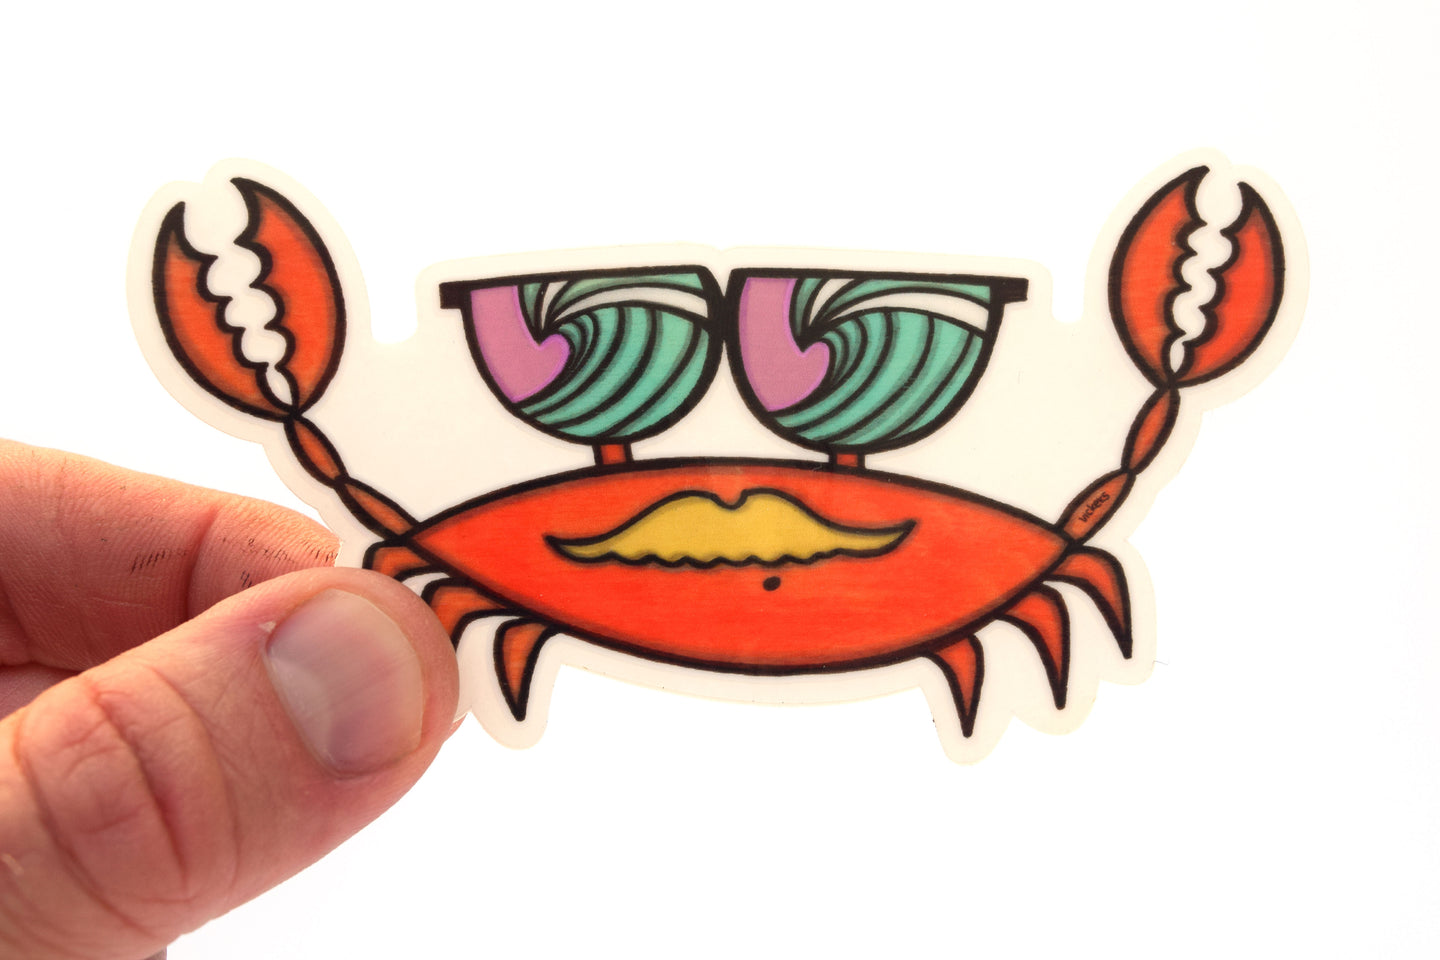 Crab Surf Check Sticker